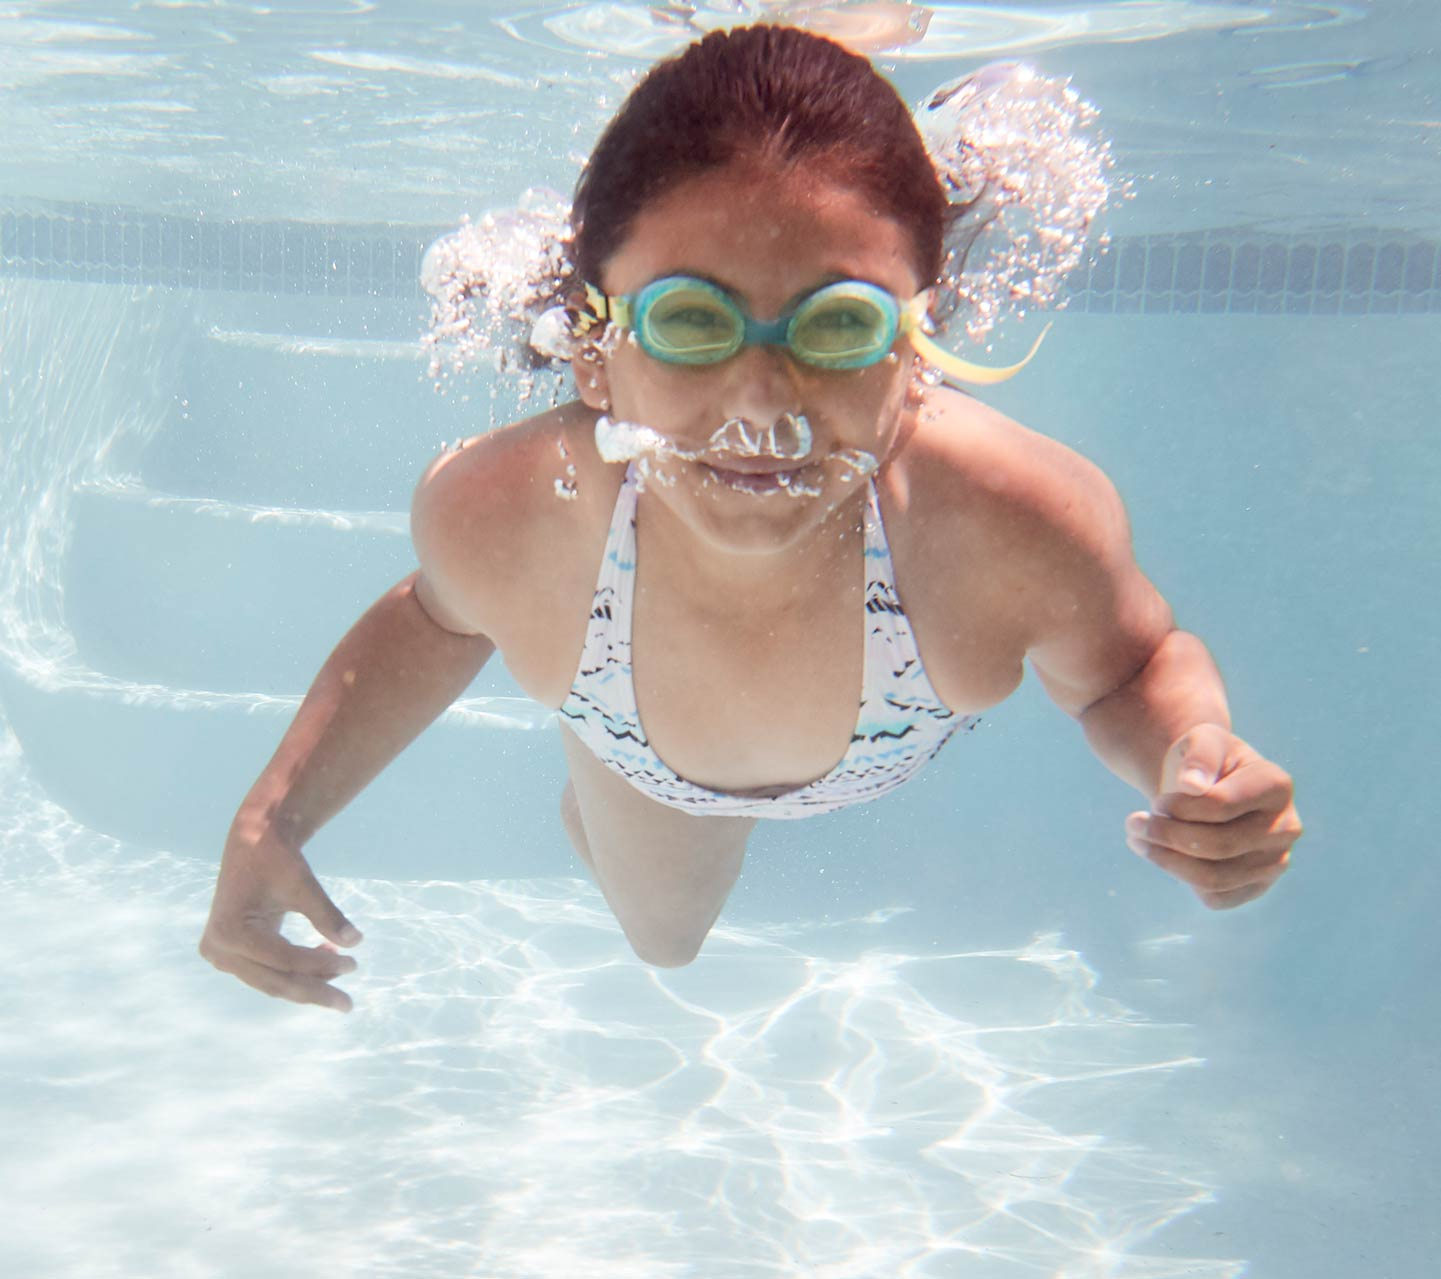 Child swimming underwater with Cochlear implant